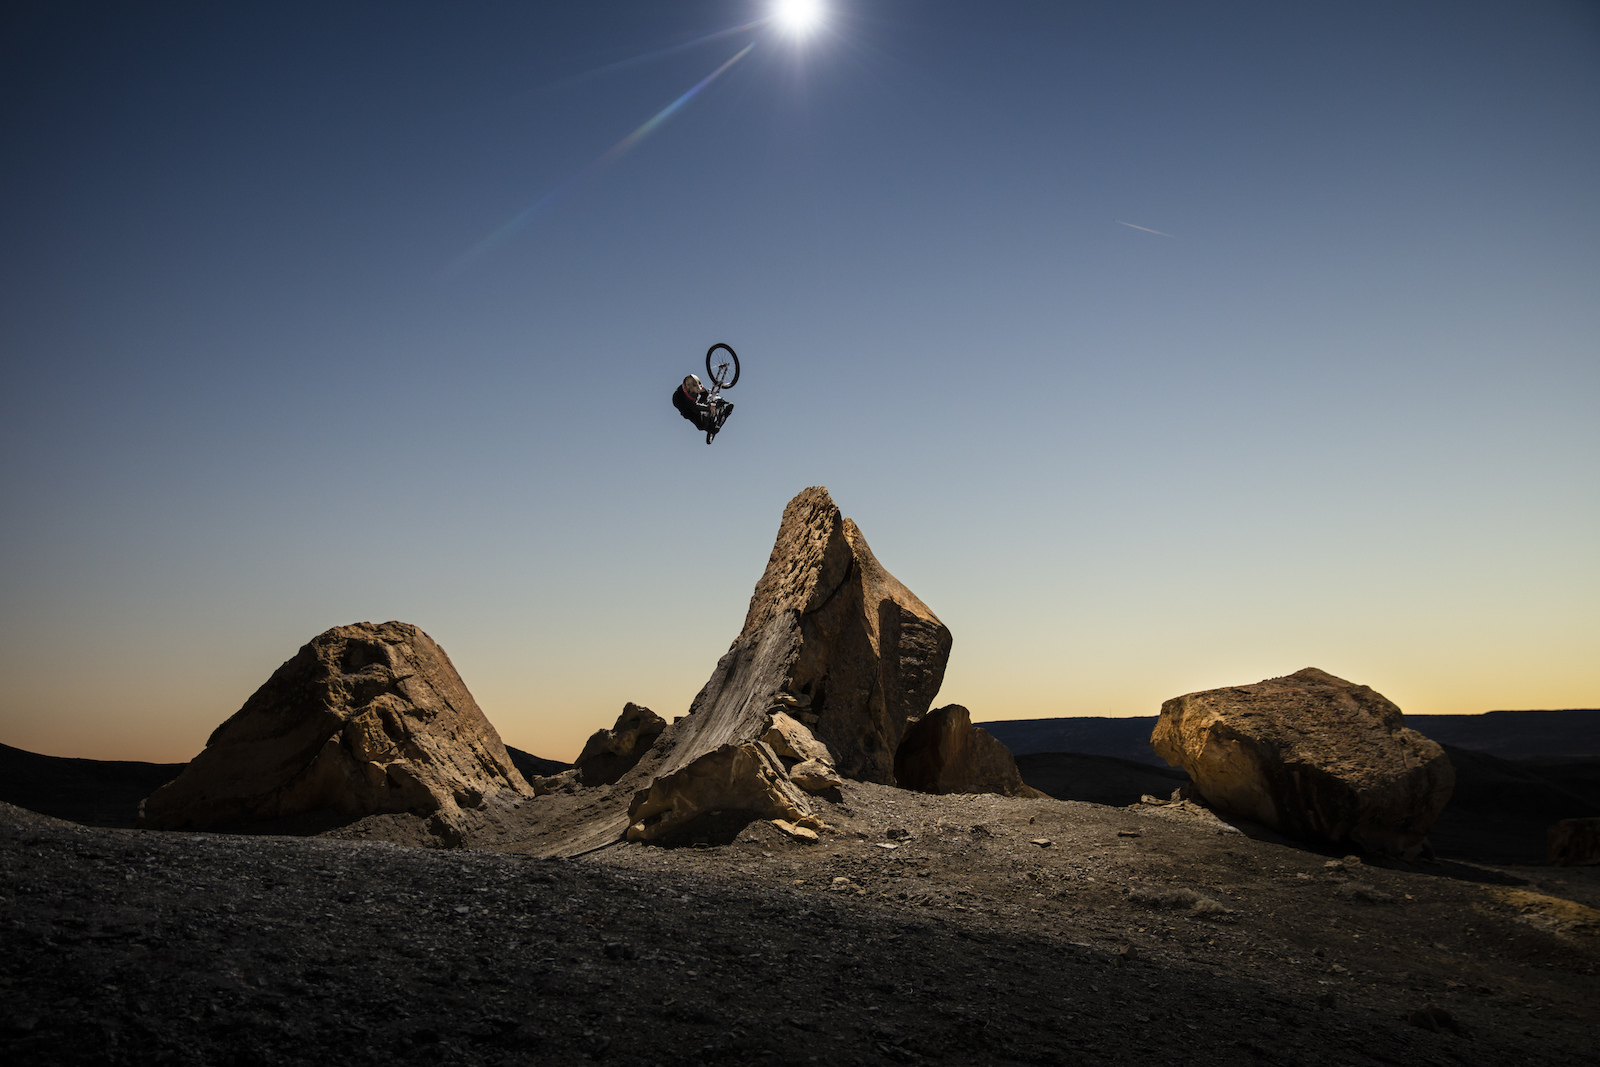 Brett Rheeder fully clicked off a natural rock quarter lit by overhead drone strobe during the filming of his segment in Big Water Utah for Return to Earth by Anthill Films.